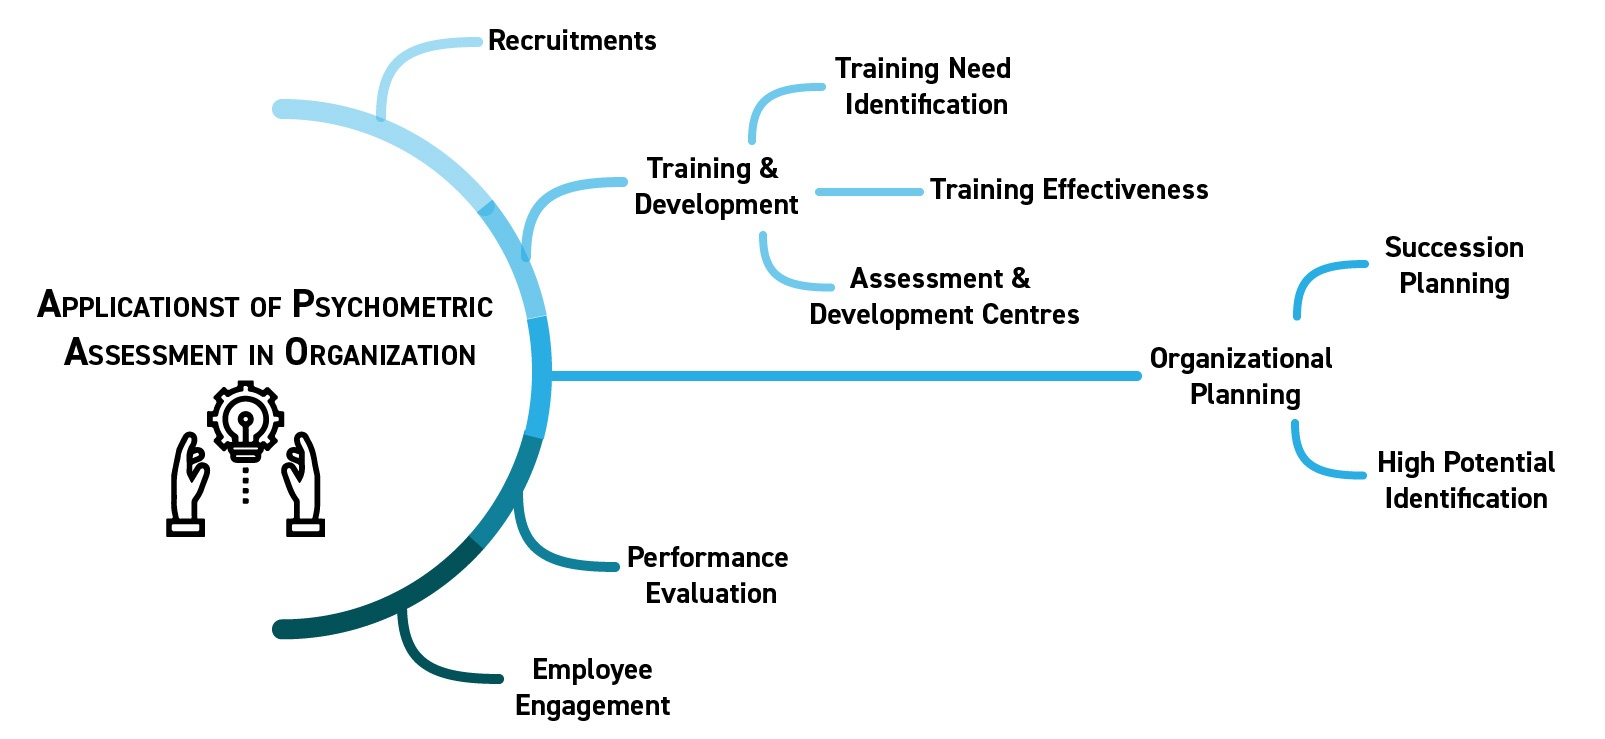 applications of psychometric assessment in an organization